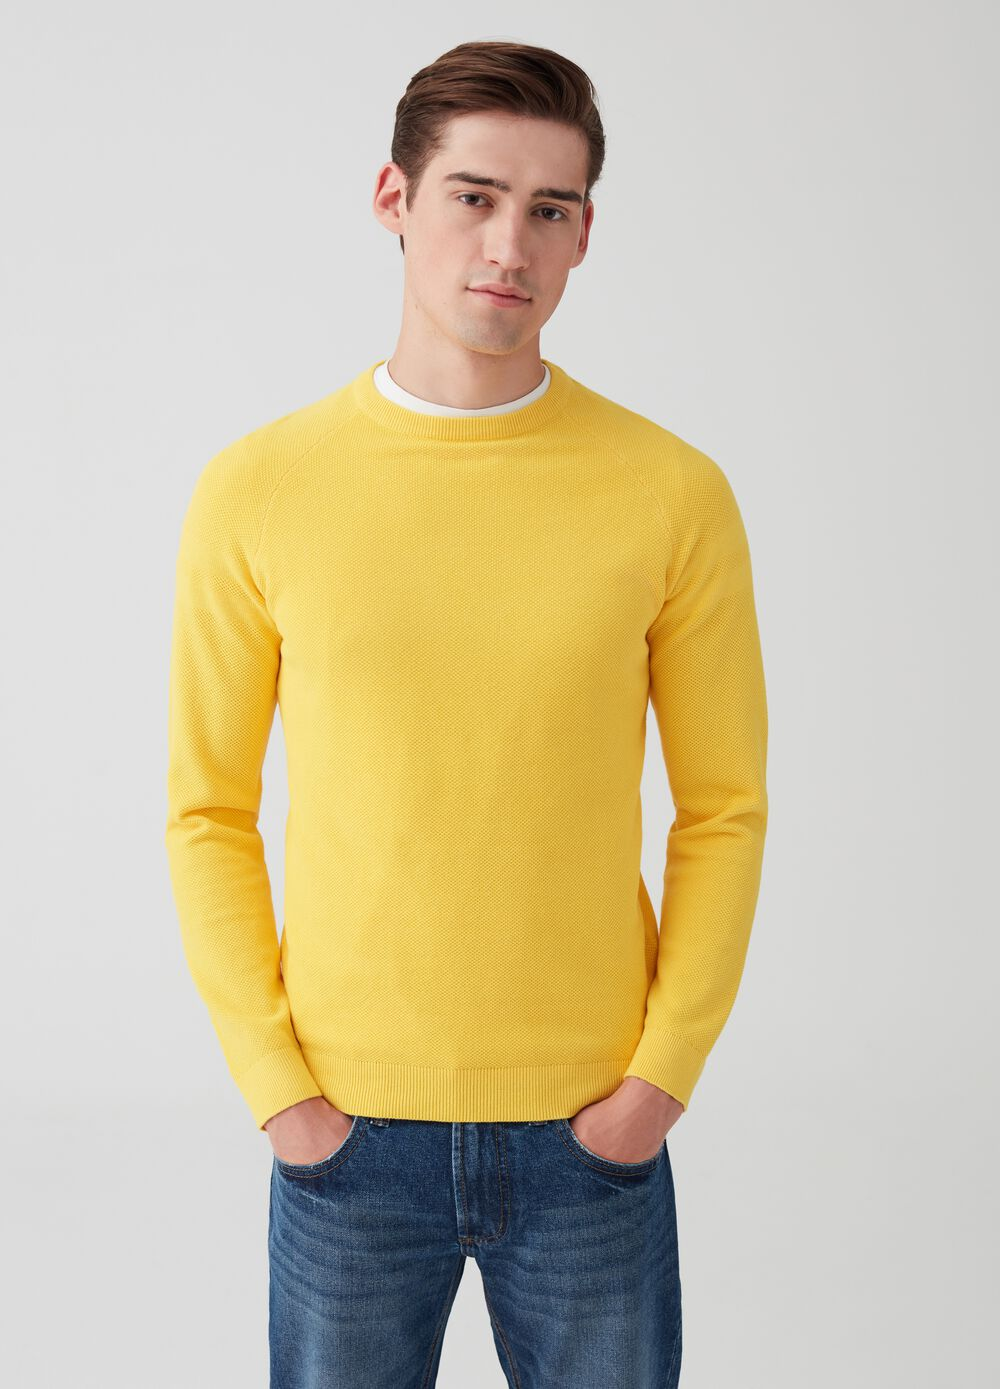 100% cotton pullover with textured design.